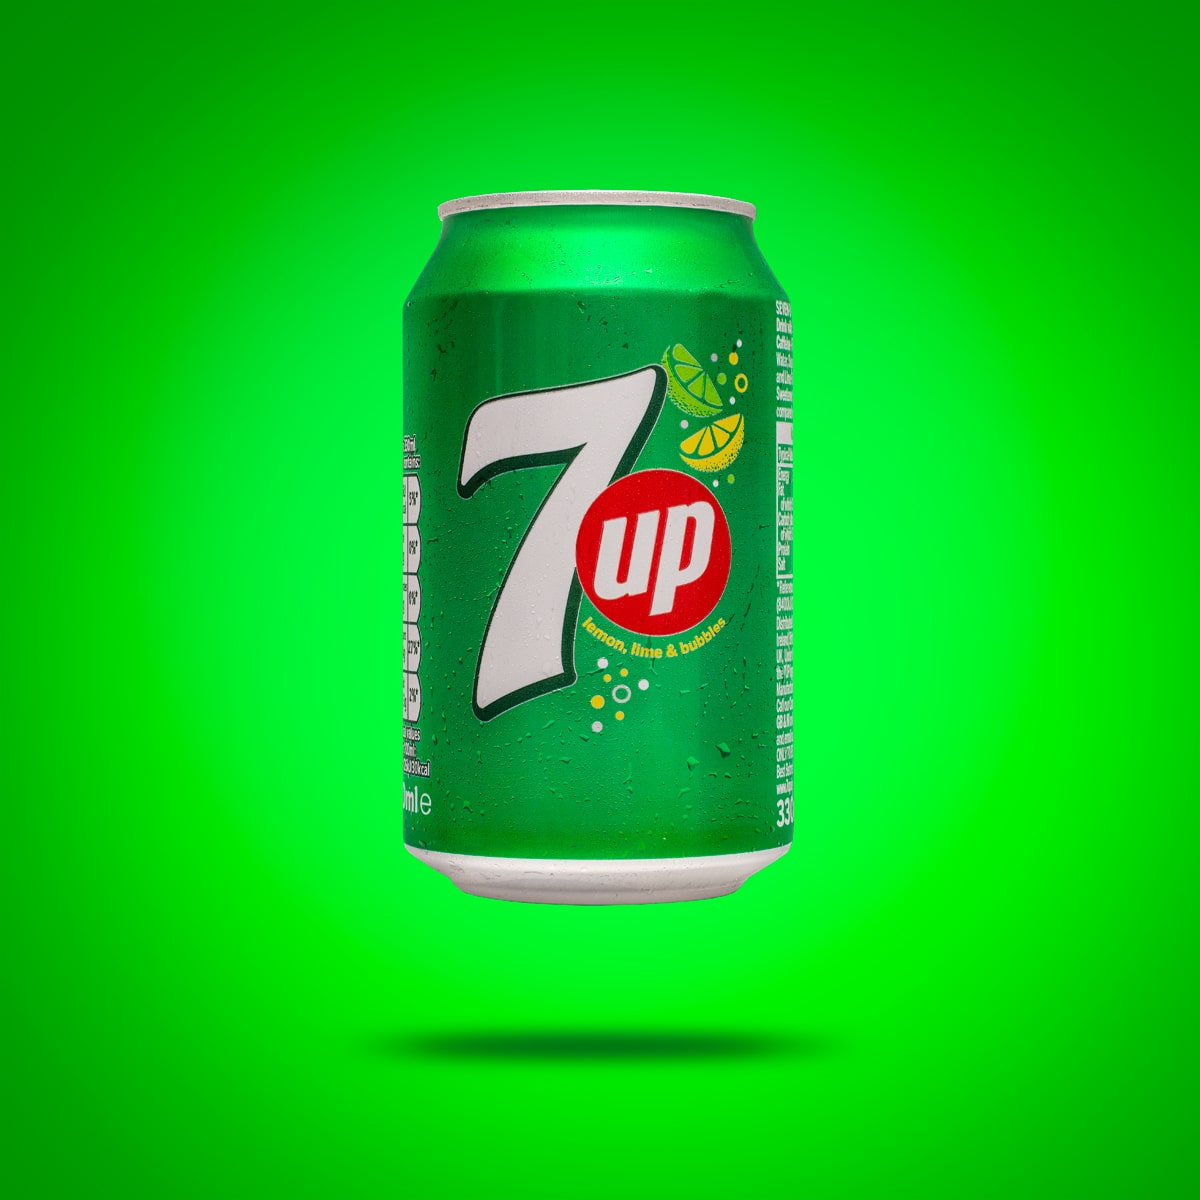 E-commerce Product Photography Limerick Ireland cold drink 7up